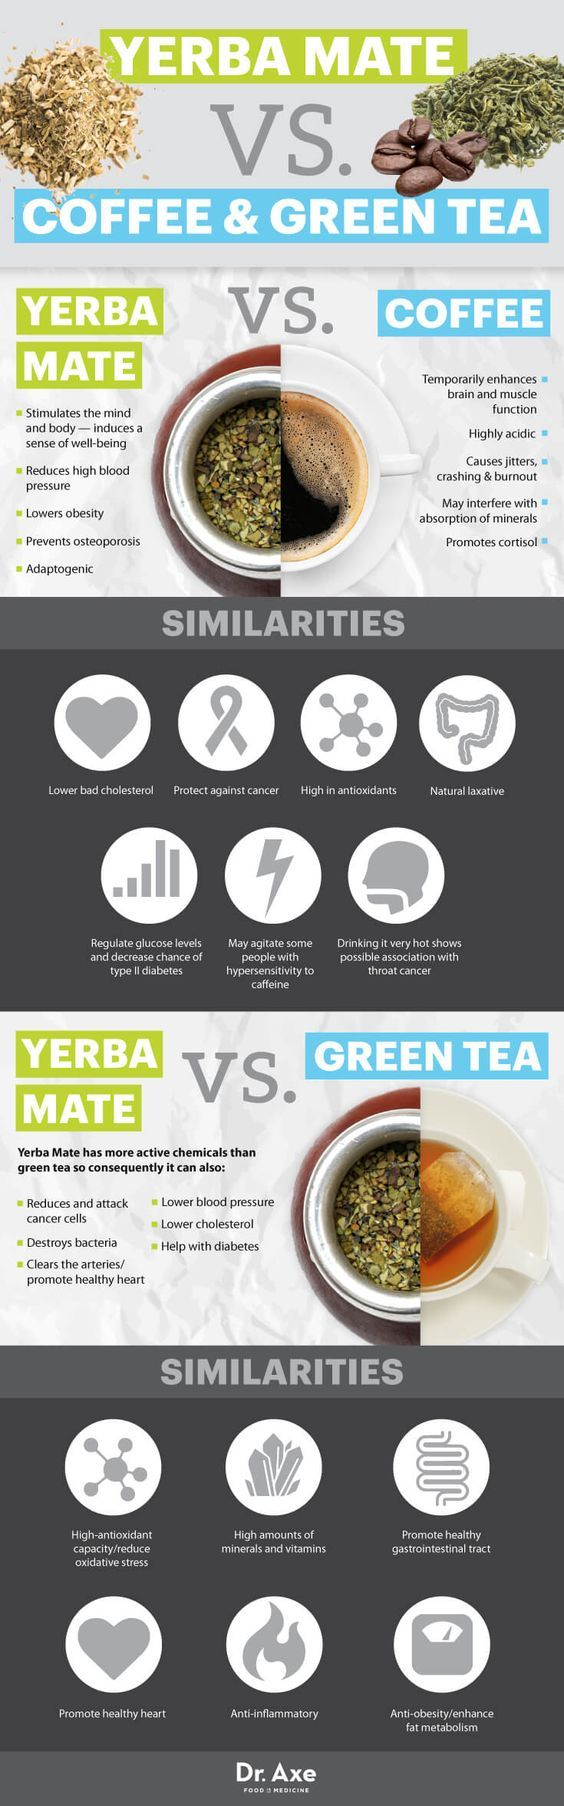 Yerba mate vs. coffee & green tea - Dr. Axe http://www.draxe.com #health #holistic #natural (scheduled via http://www.tailwindapp.com?utm_source=pinterest&utm_medium=twpin&utm_content=post60525518&utm_campaign=scheduler_attribution)